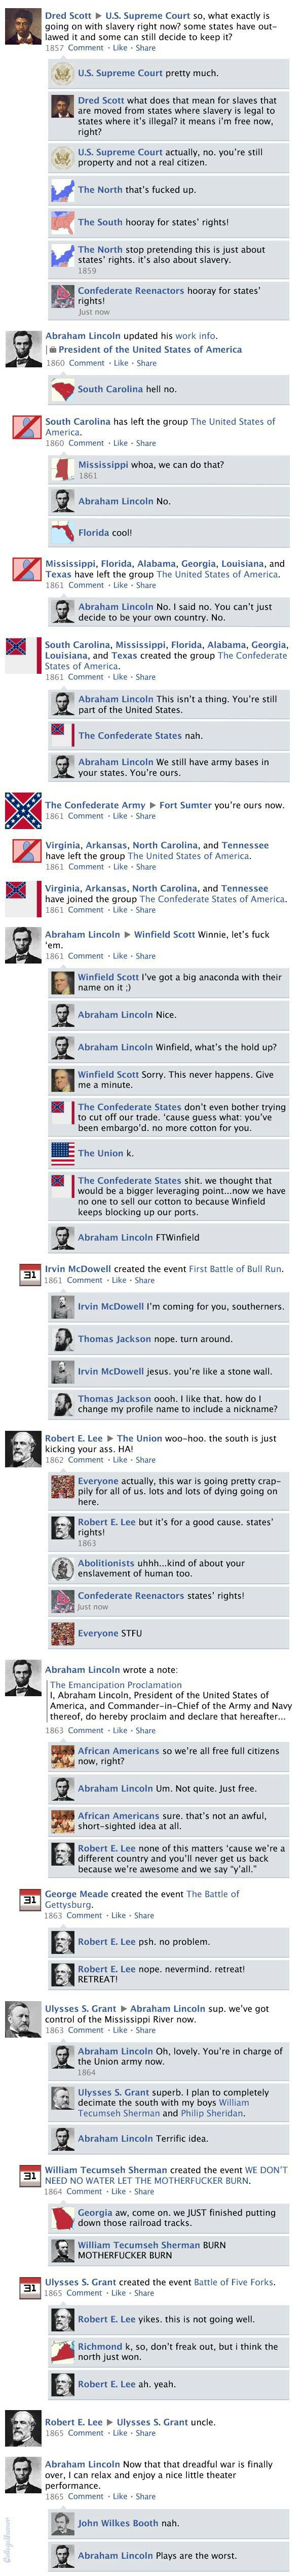 Civil War on Facebook